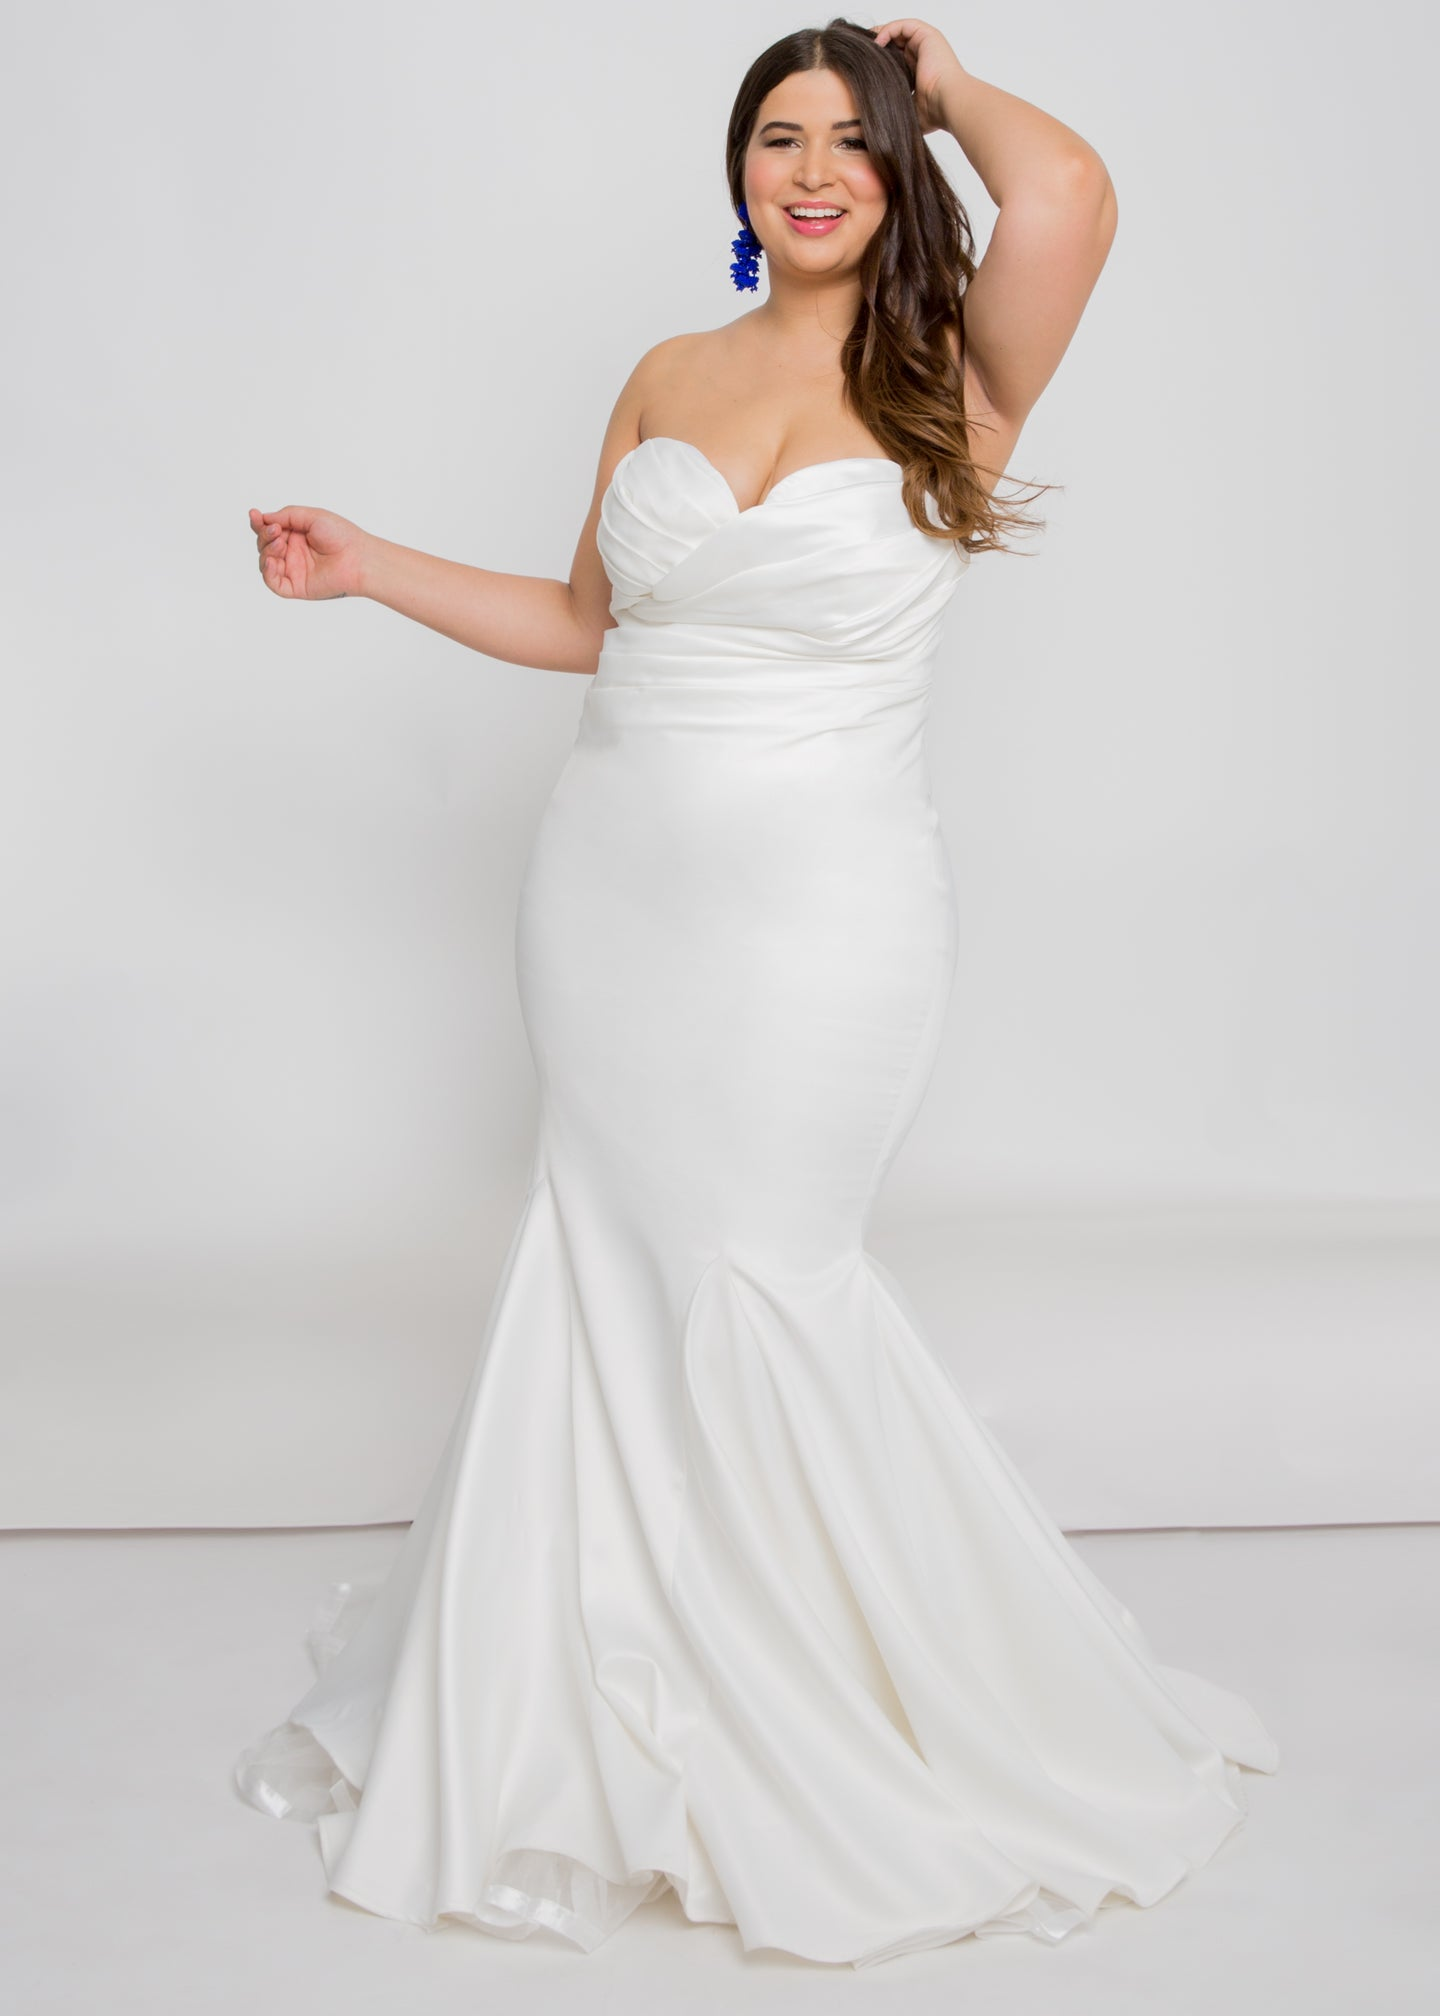 Gorgeous bridal gowns for all body shapes: plus size, curvy, or petite brides. Try on our wedding dresses at home. Size 0-30. Comfortable. Convenient. Fun. Lace or satin. Mermaid or A-line. This strapless sweetheart top complements any figure with its satin ruching. Hooks are available to further customize the dress with sleeves. This trumpet skirt will bring any dress to life.